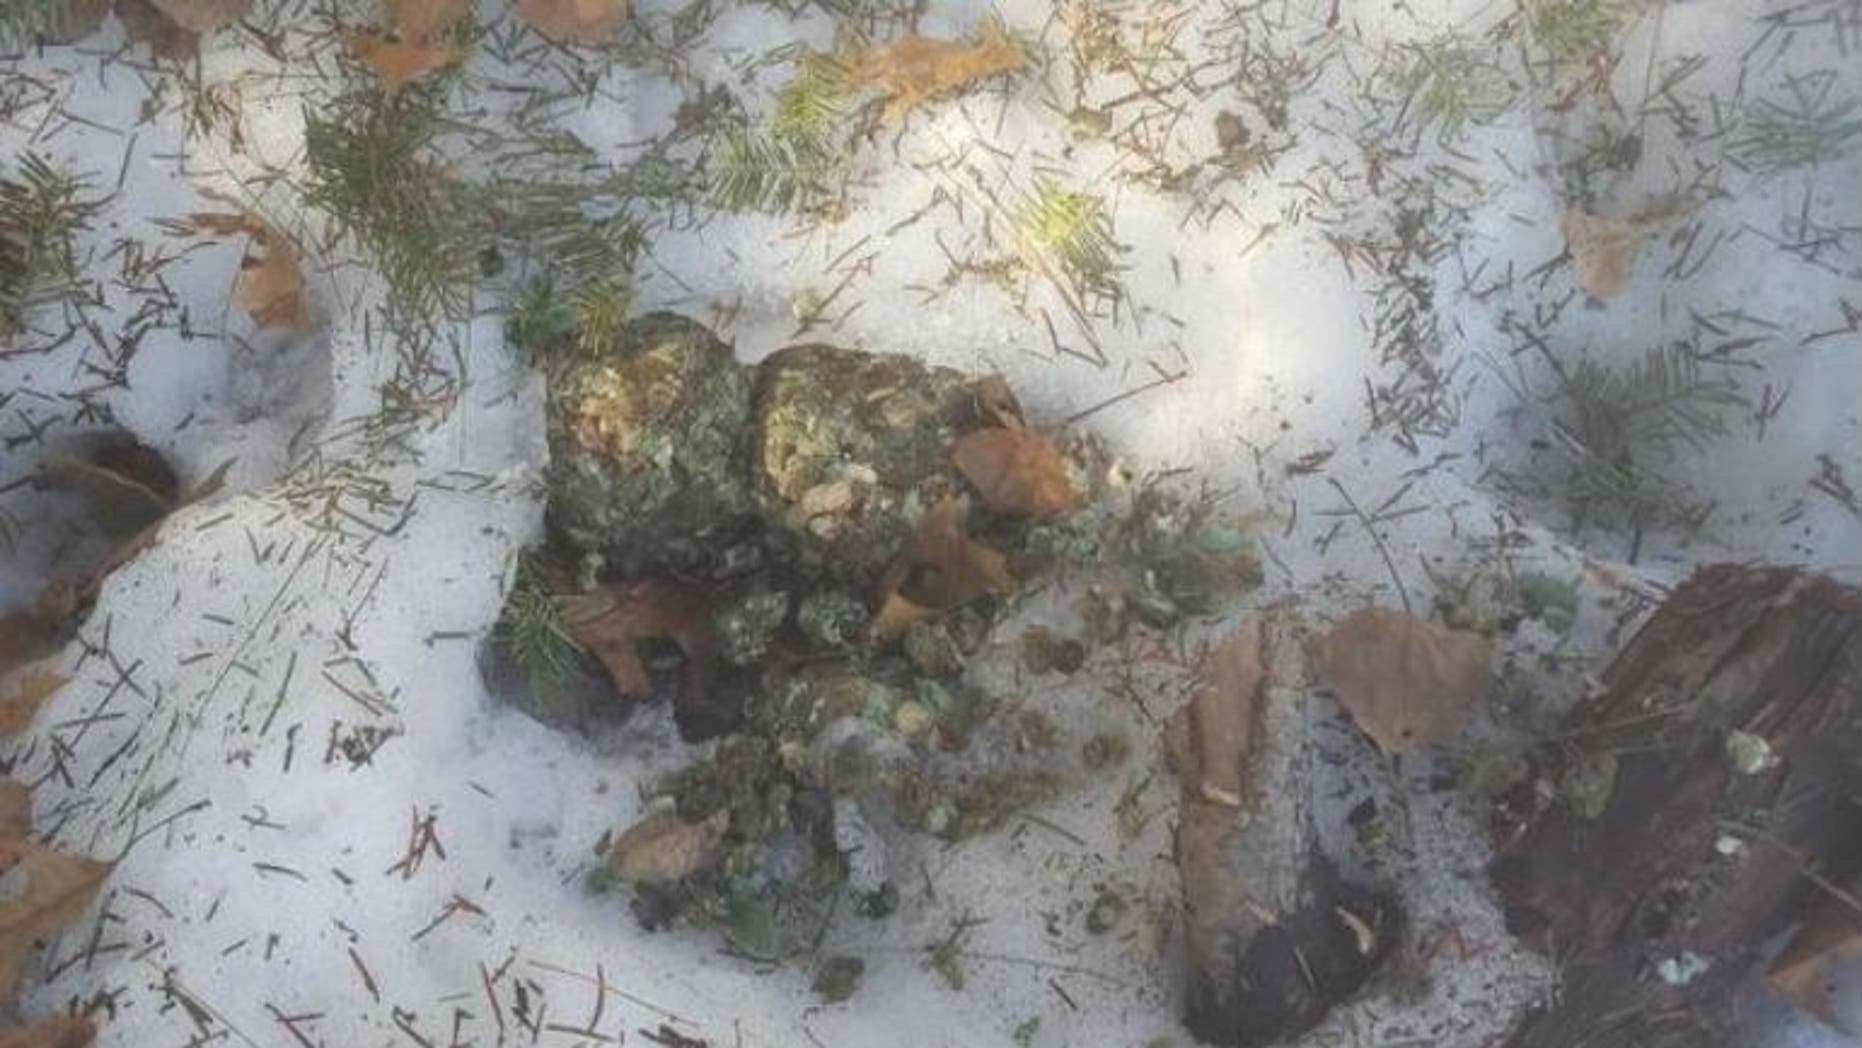 Image of possible poison used to kill wildlife in northern Wisconsin